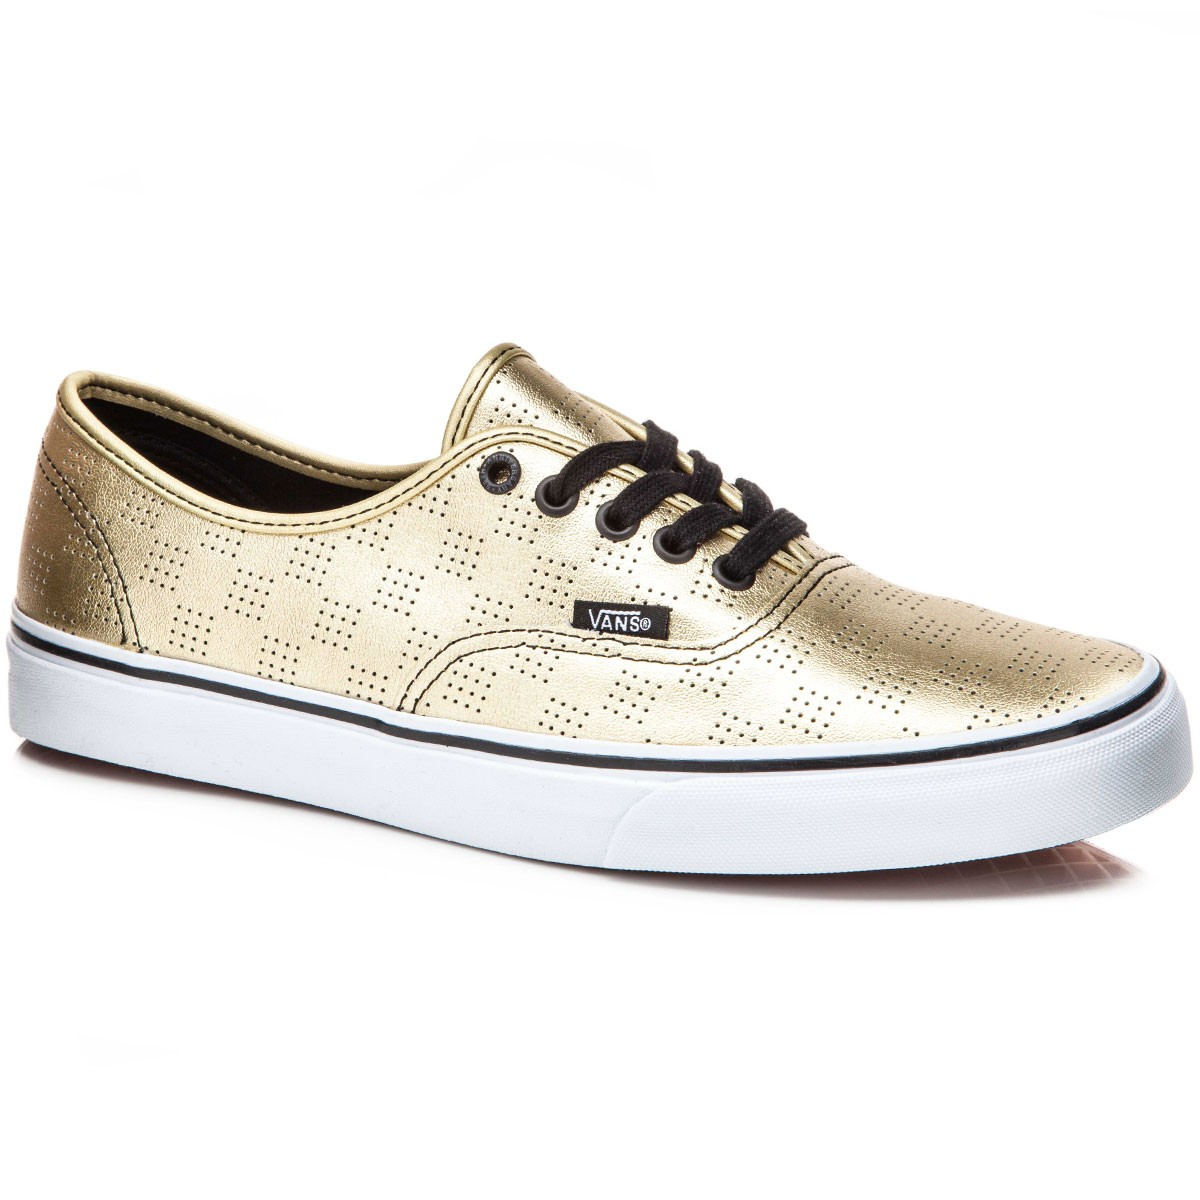 Vans Original Authentic Shoes - Gold/Checker